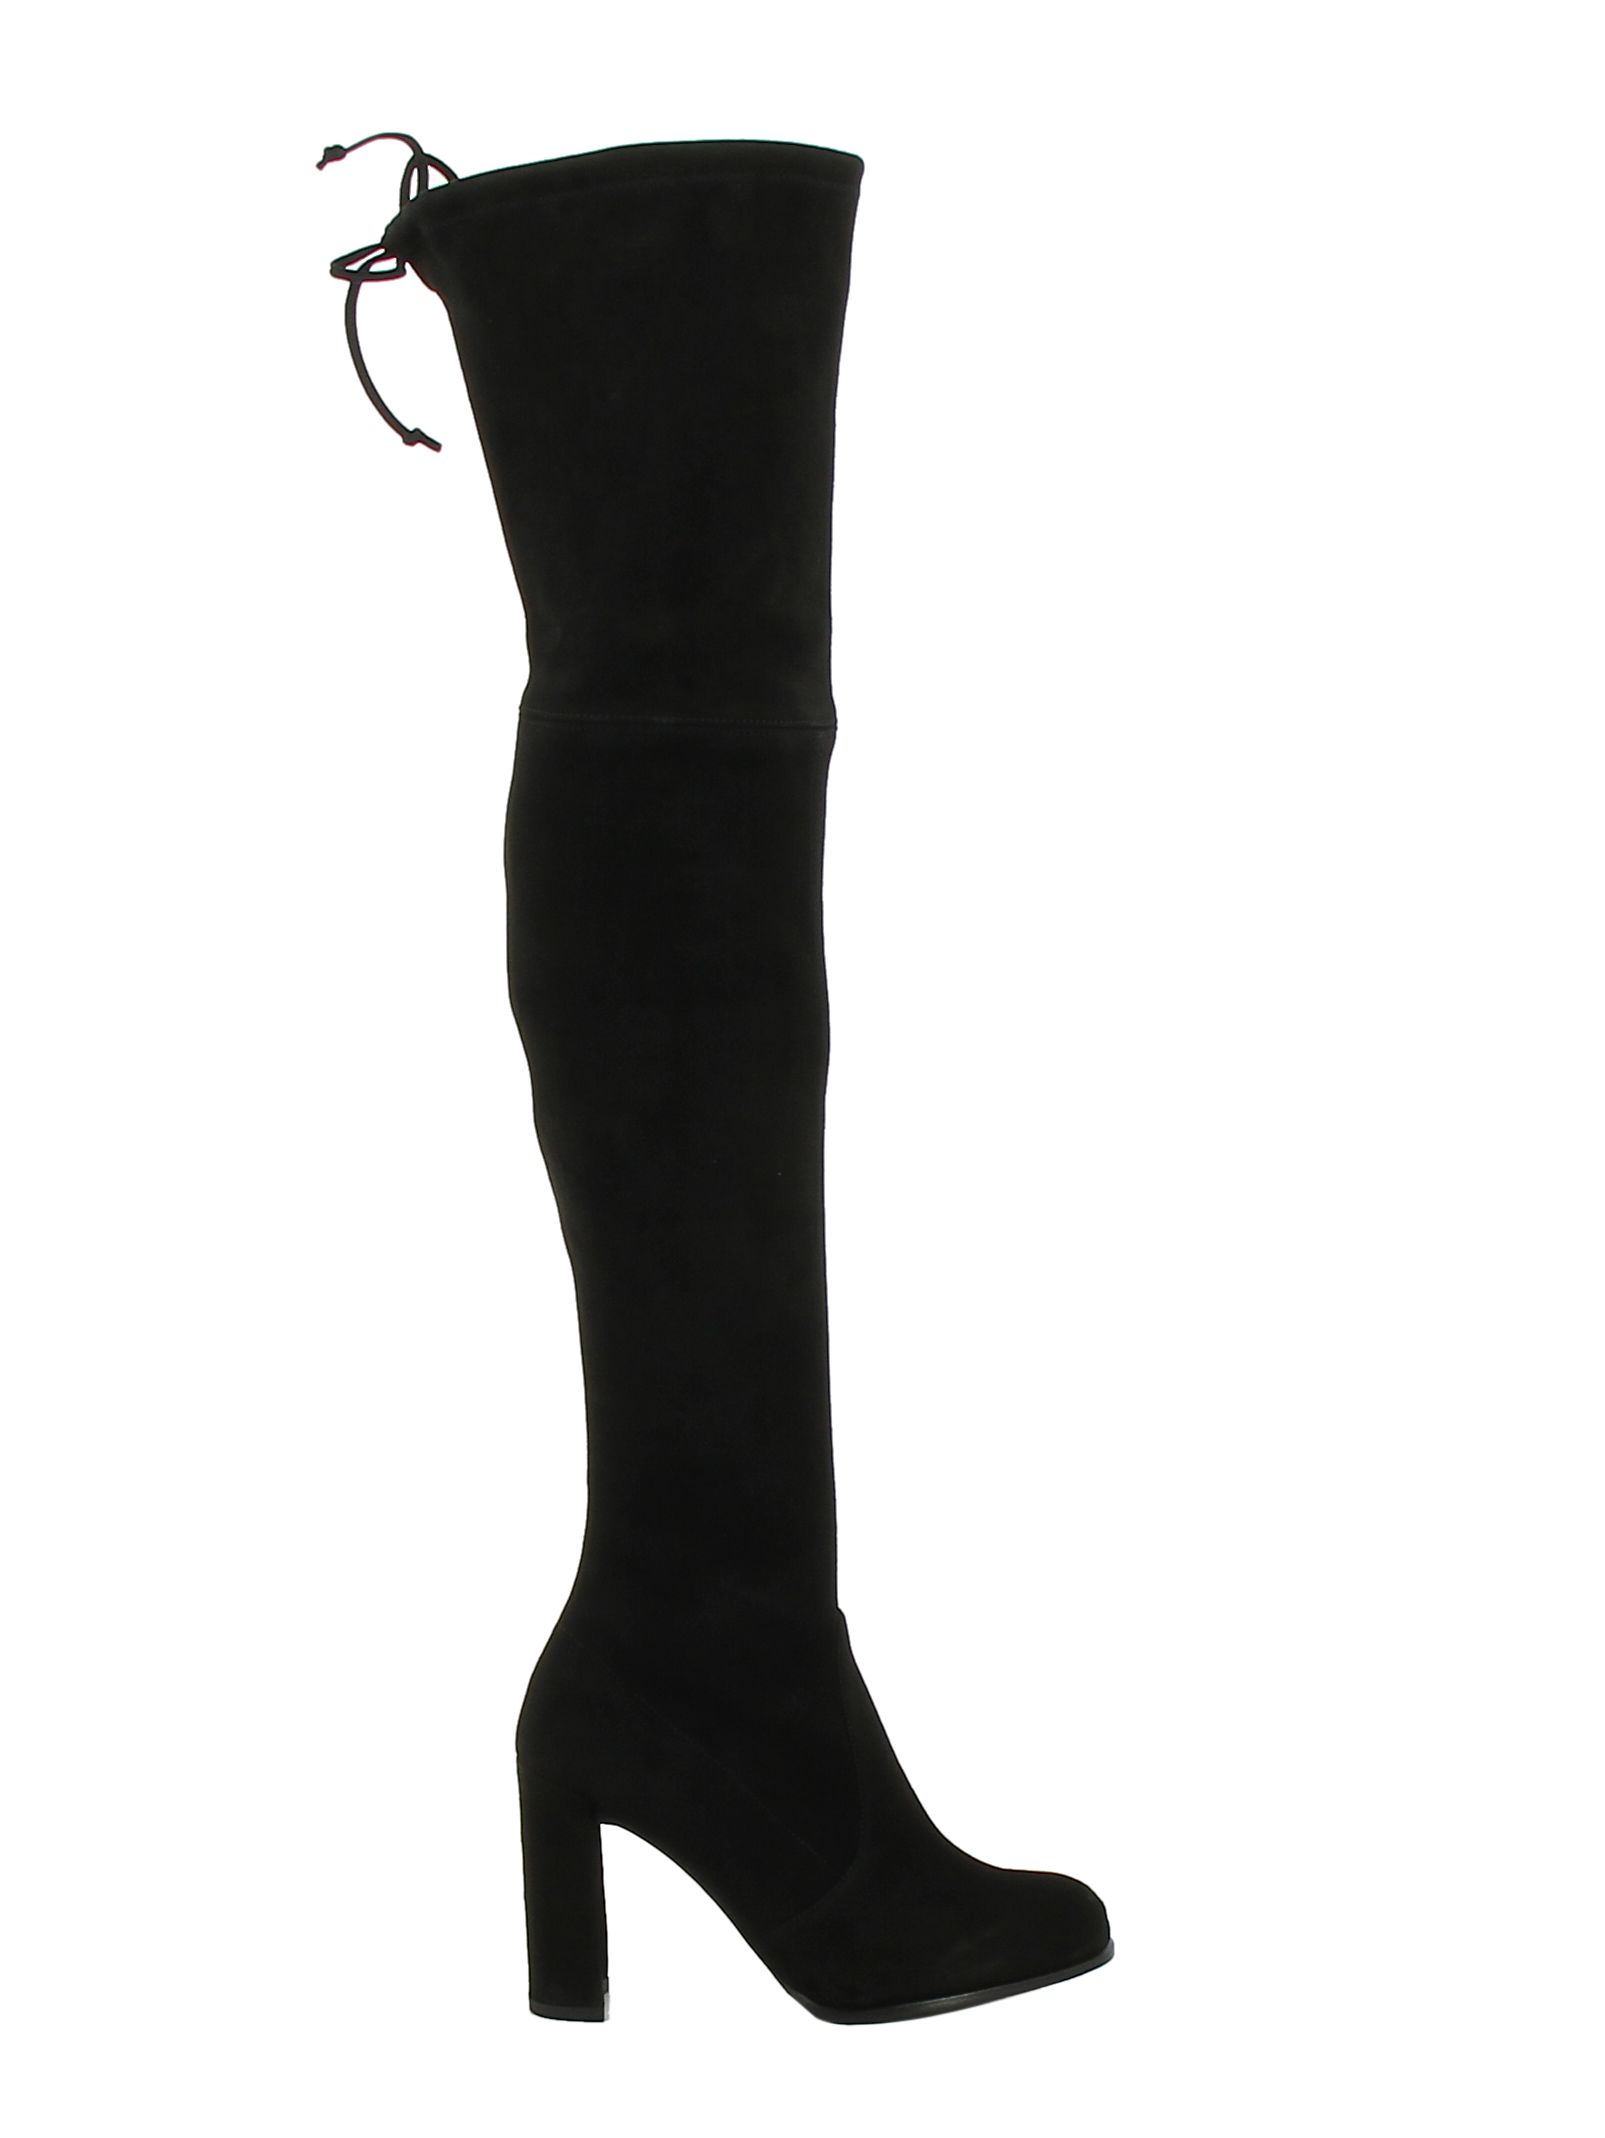 Stuart Weitzman Hiline Over-The-Knee Boots